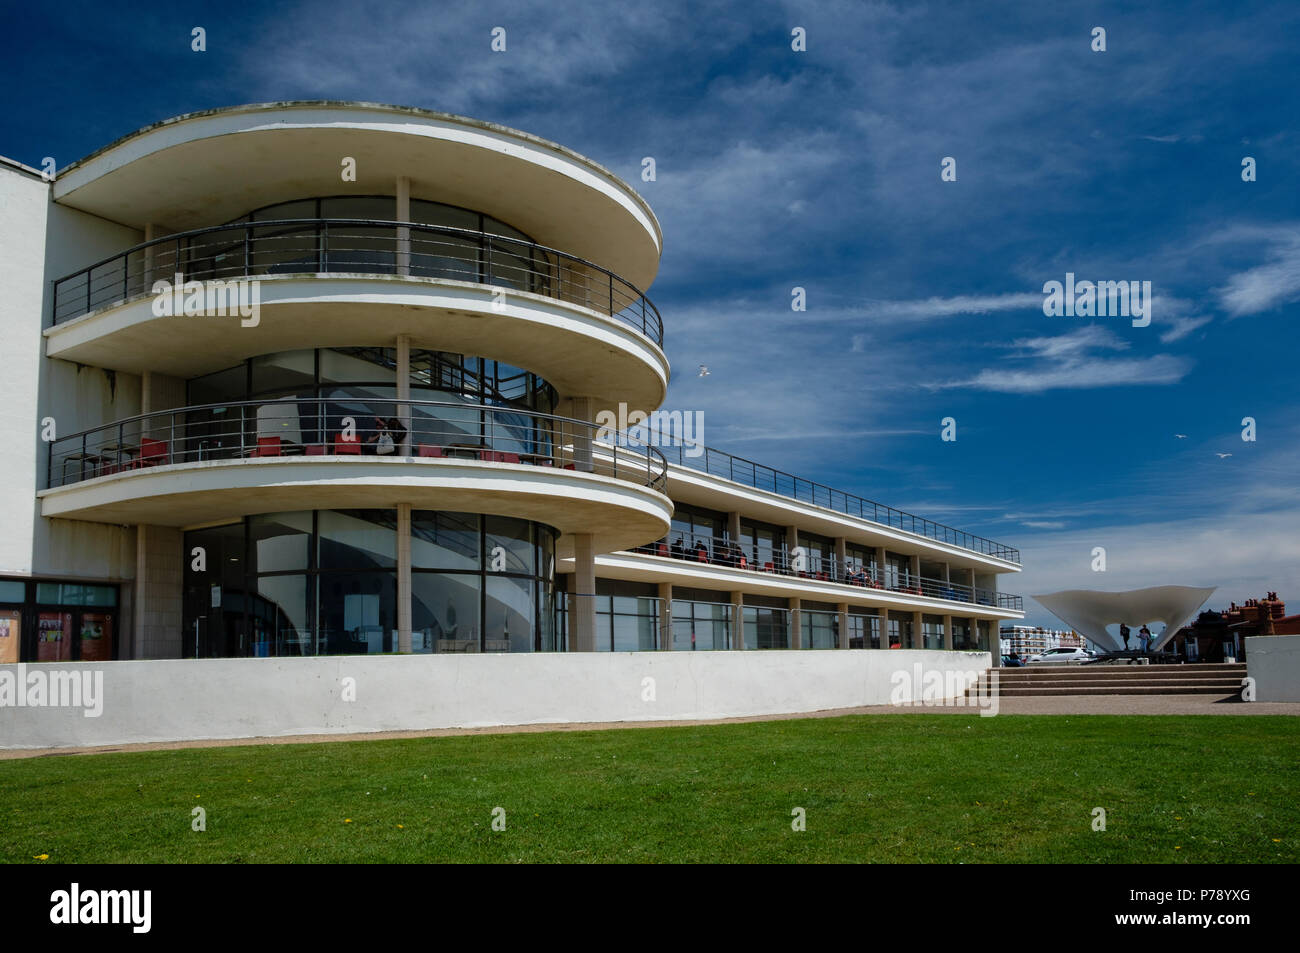 The De La Warr Pavilion at Bexhill-on-Sea, East Sussex was designed in the Modernist style by Erich Mendelsohn and Serge Chermayeff and built in 1935 - Stock Image